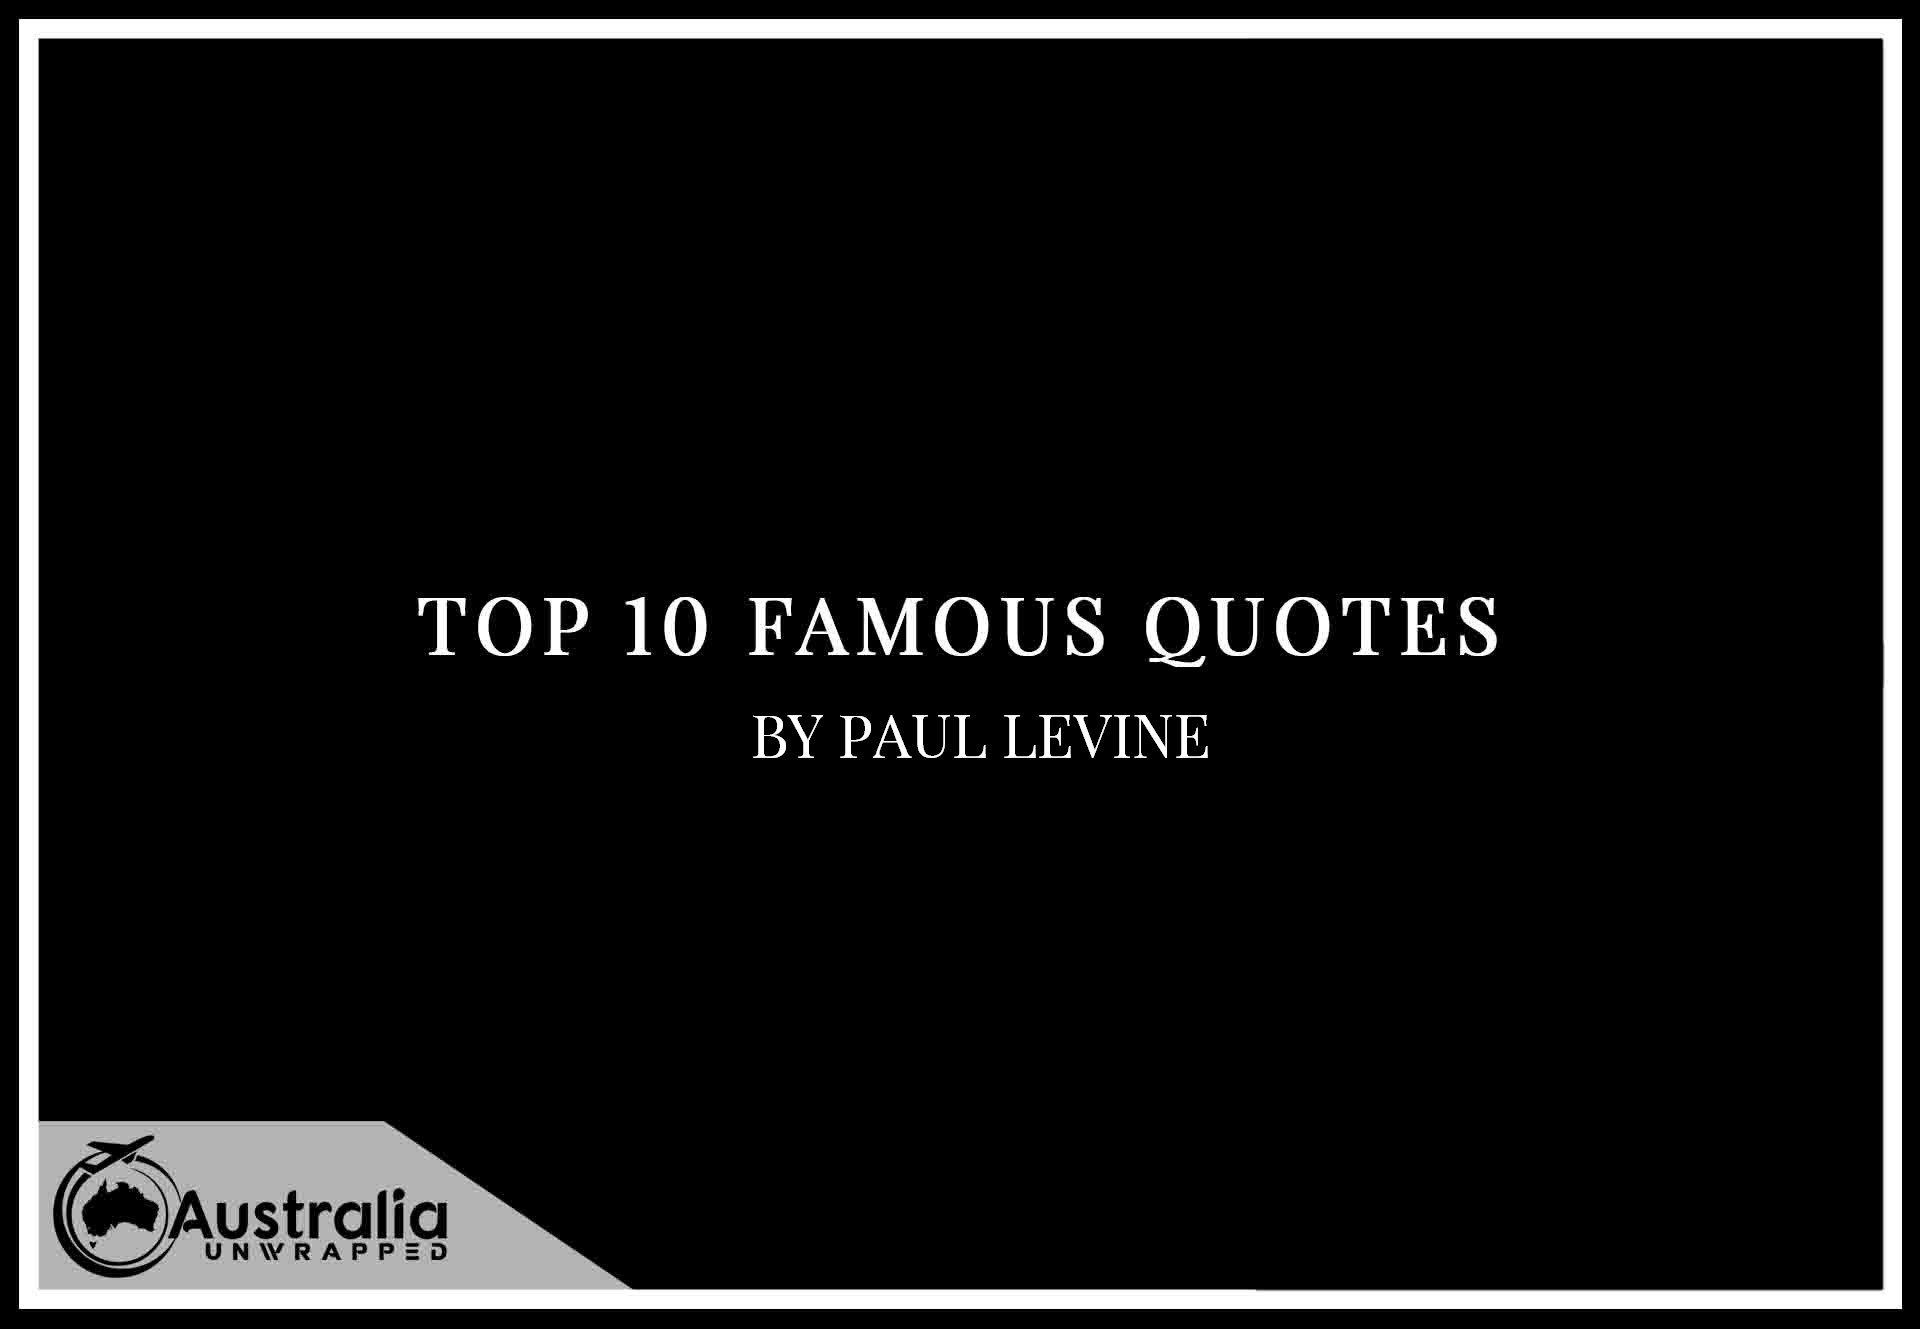 Top 10 Famous Quotes by Author Paul Levine